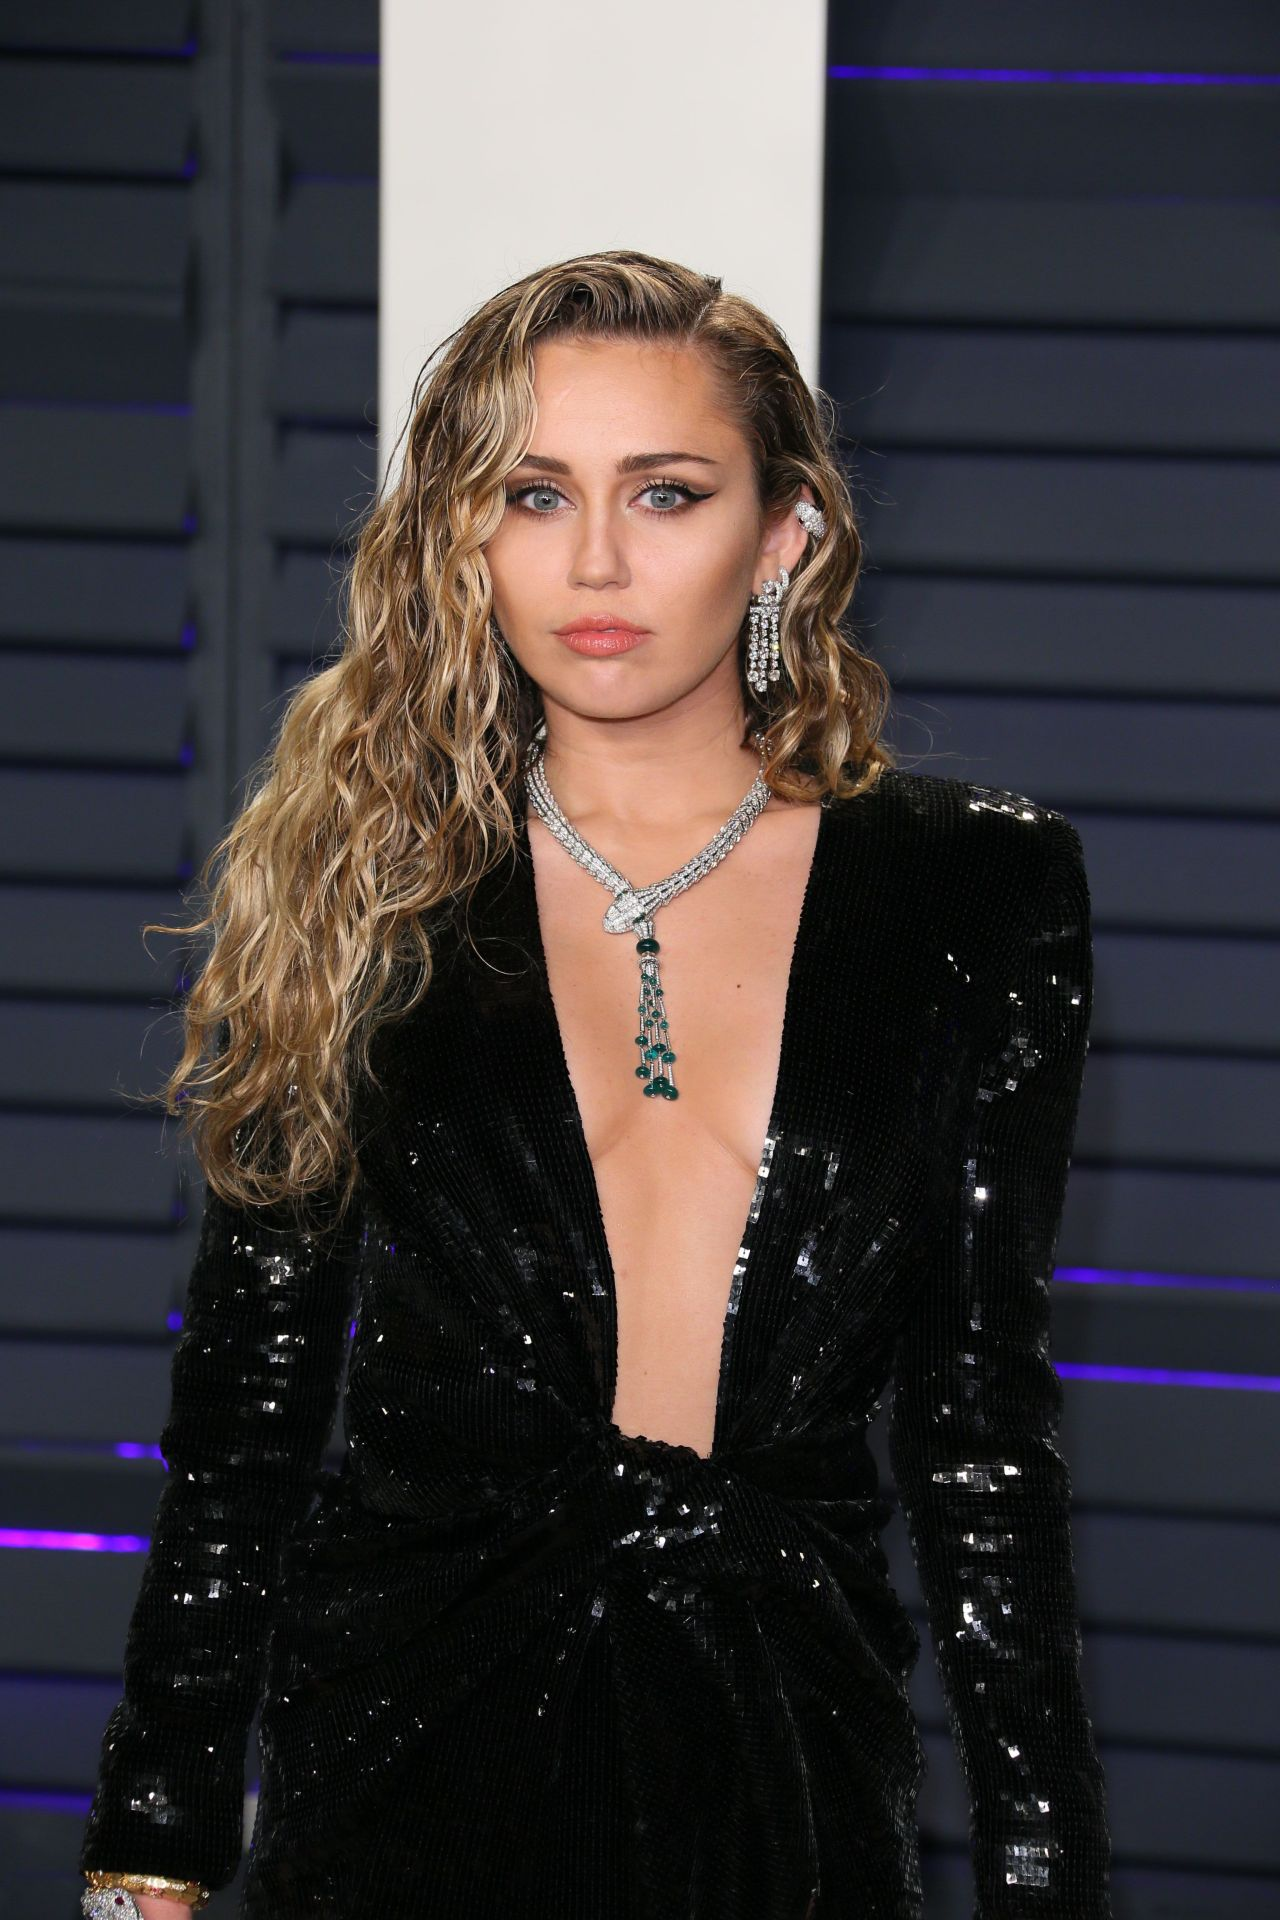 Miley Cyrus posts a candid essay about her split from Liam Hemsworth